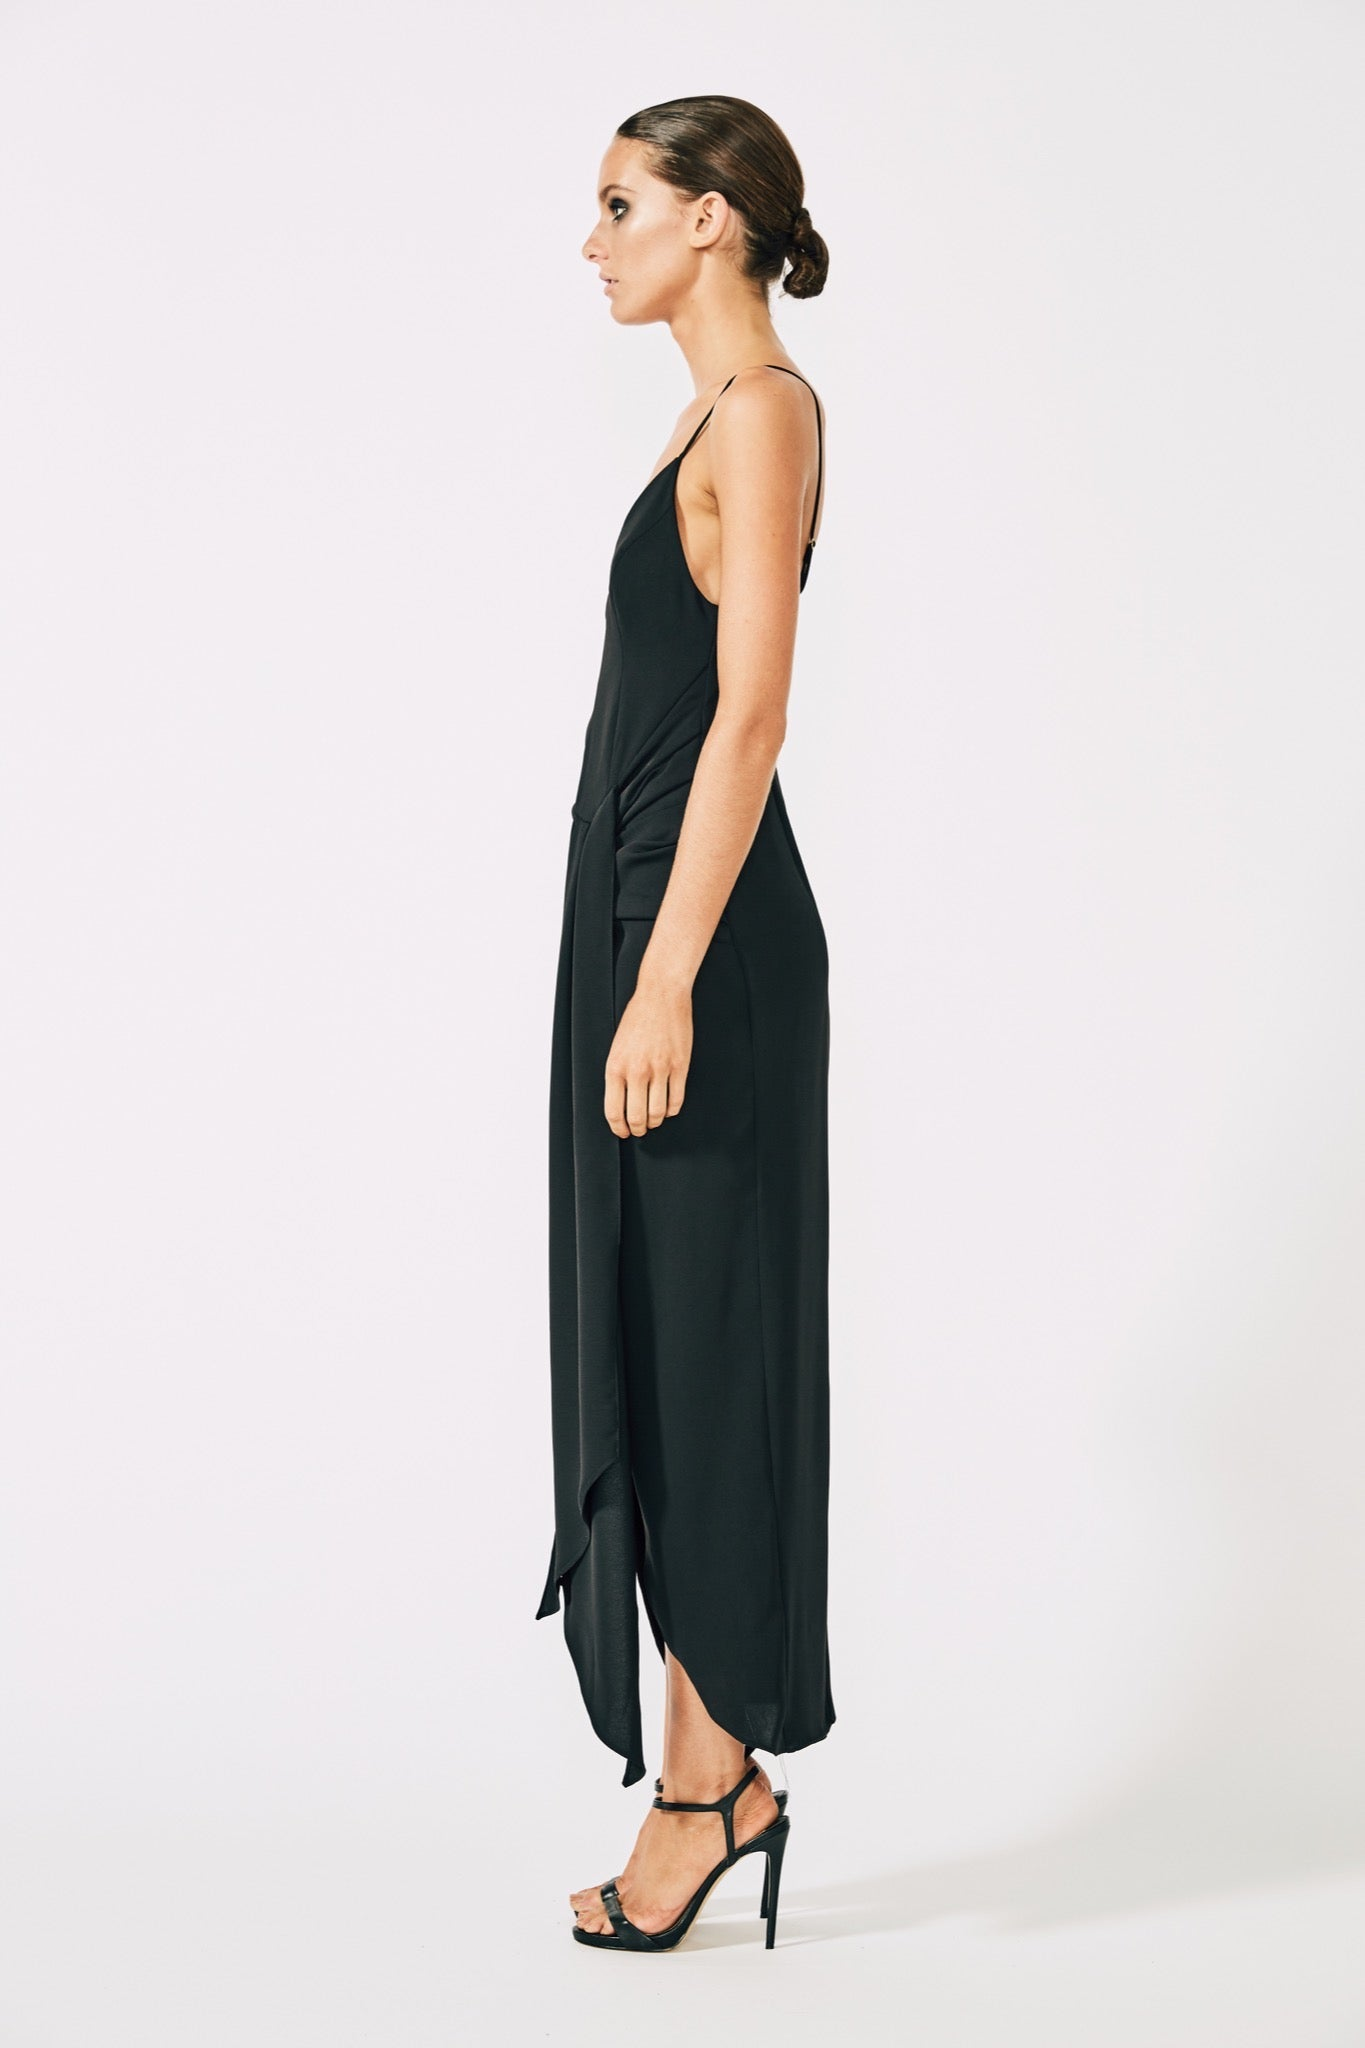 c6a82810a6d Voltaire Cocktail Draped Midi Dress – Matilda Australia